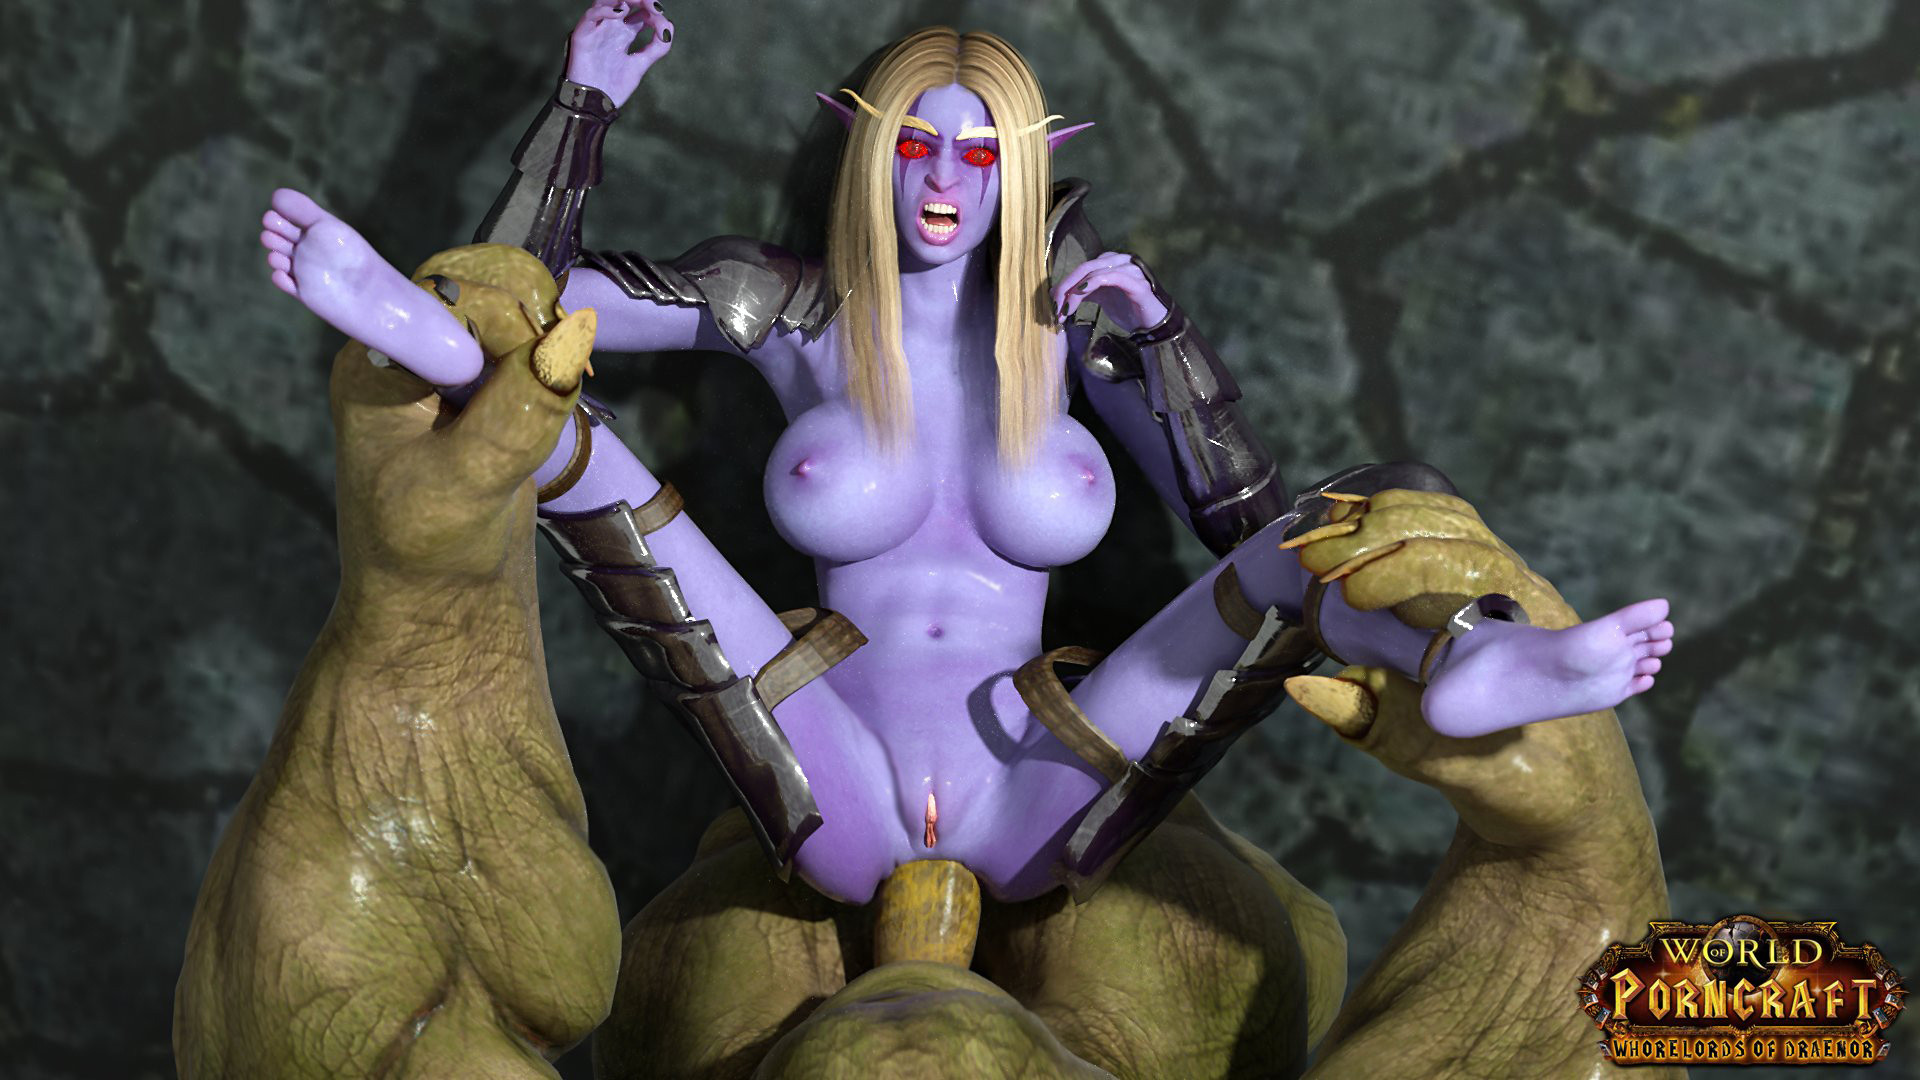 World of porncraft gallery sylvanas cartoon clip